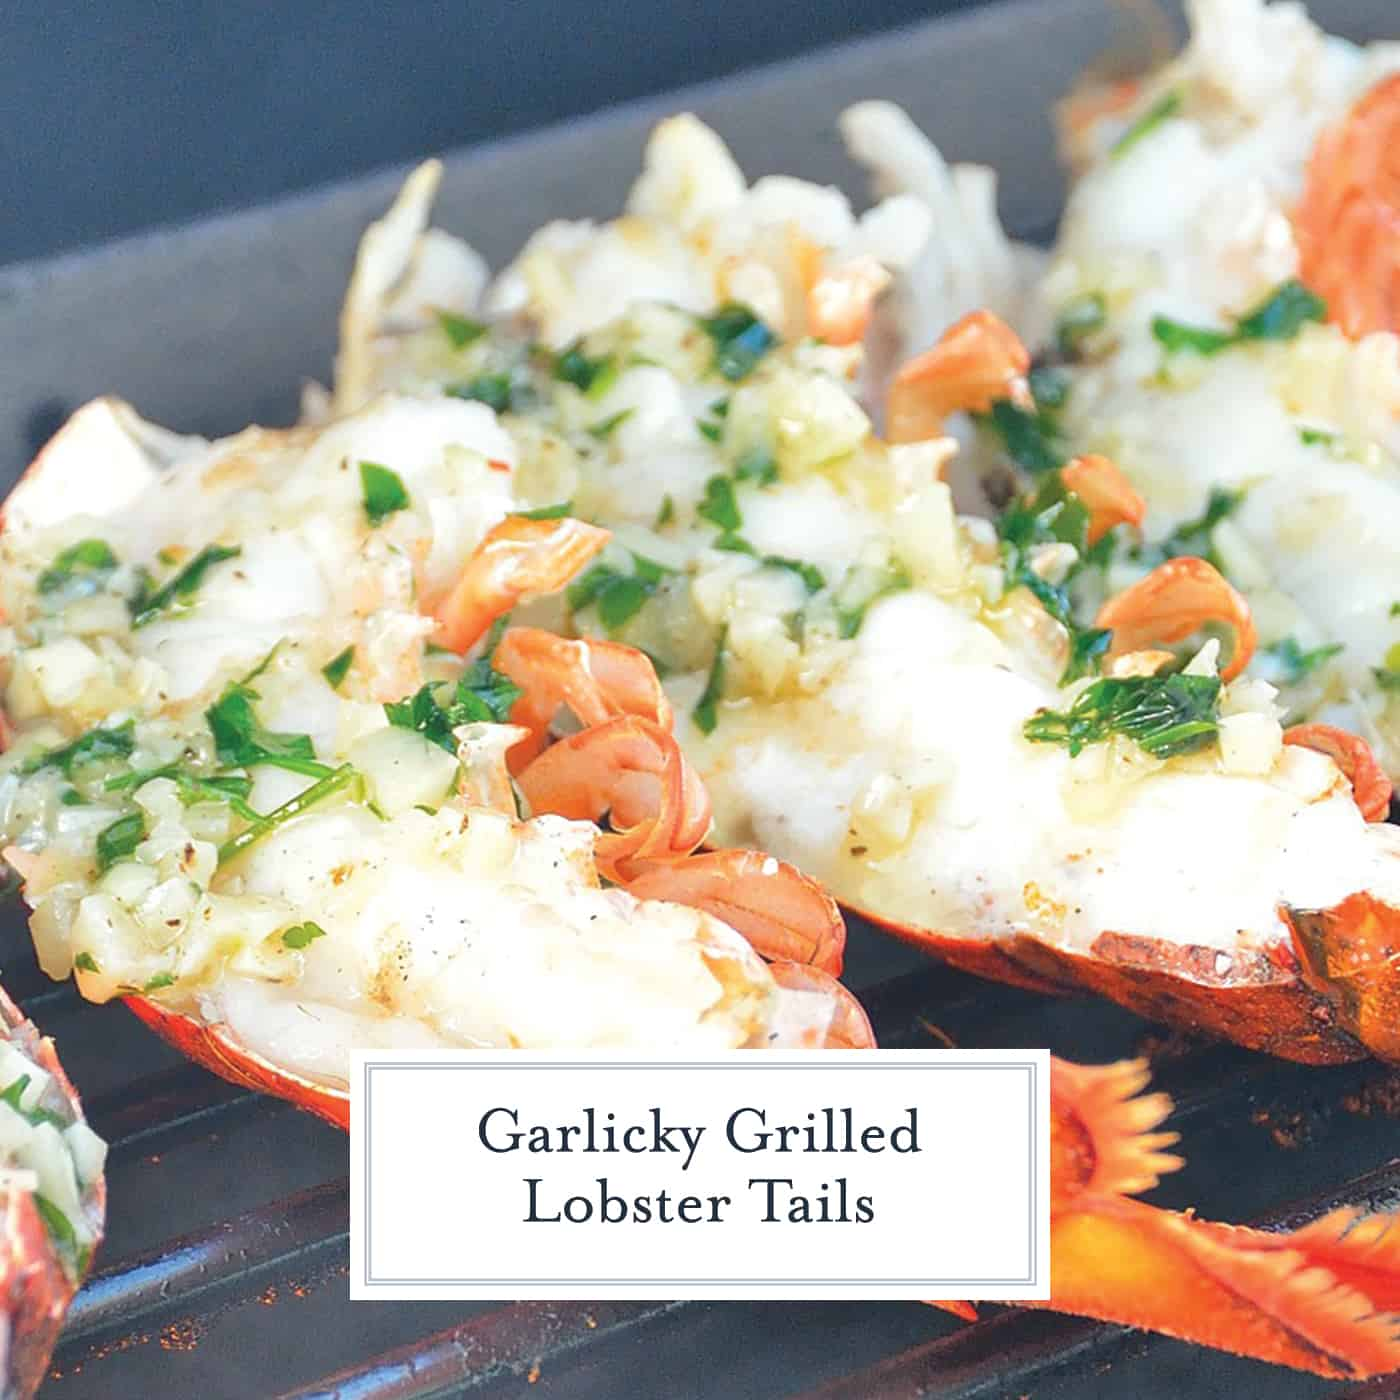 This Grilled Lobster Tail recipe is quick and amazing! It will fulfill your seafood desires and leave you wanting more!! #lobsterrecipes #howtomakelobster #grilledlobstertails www.savoryexperiments.com